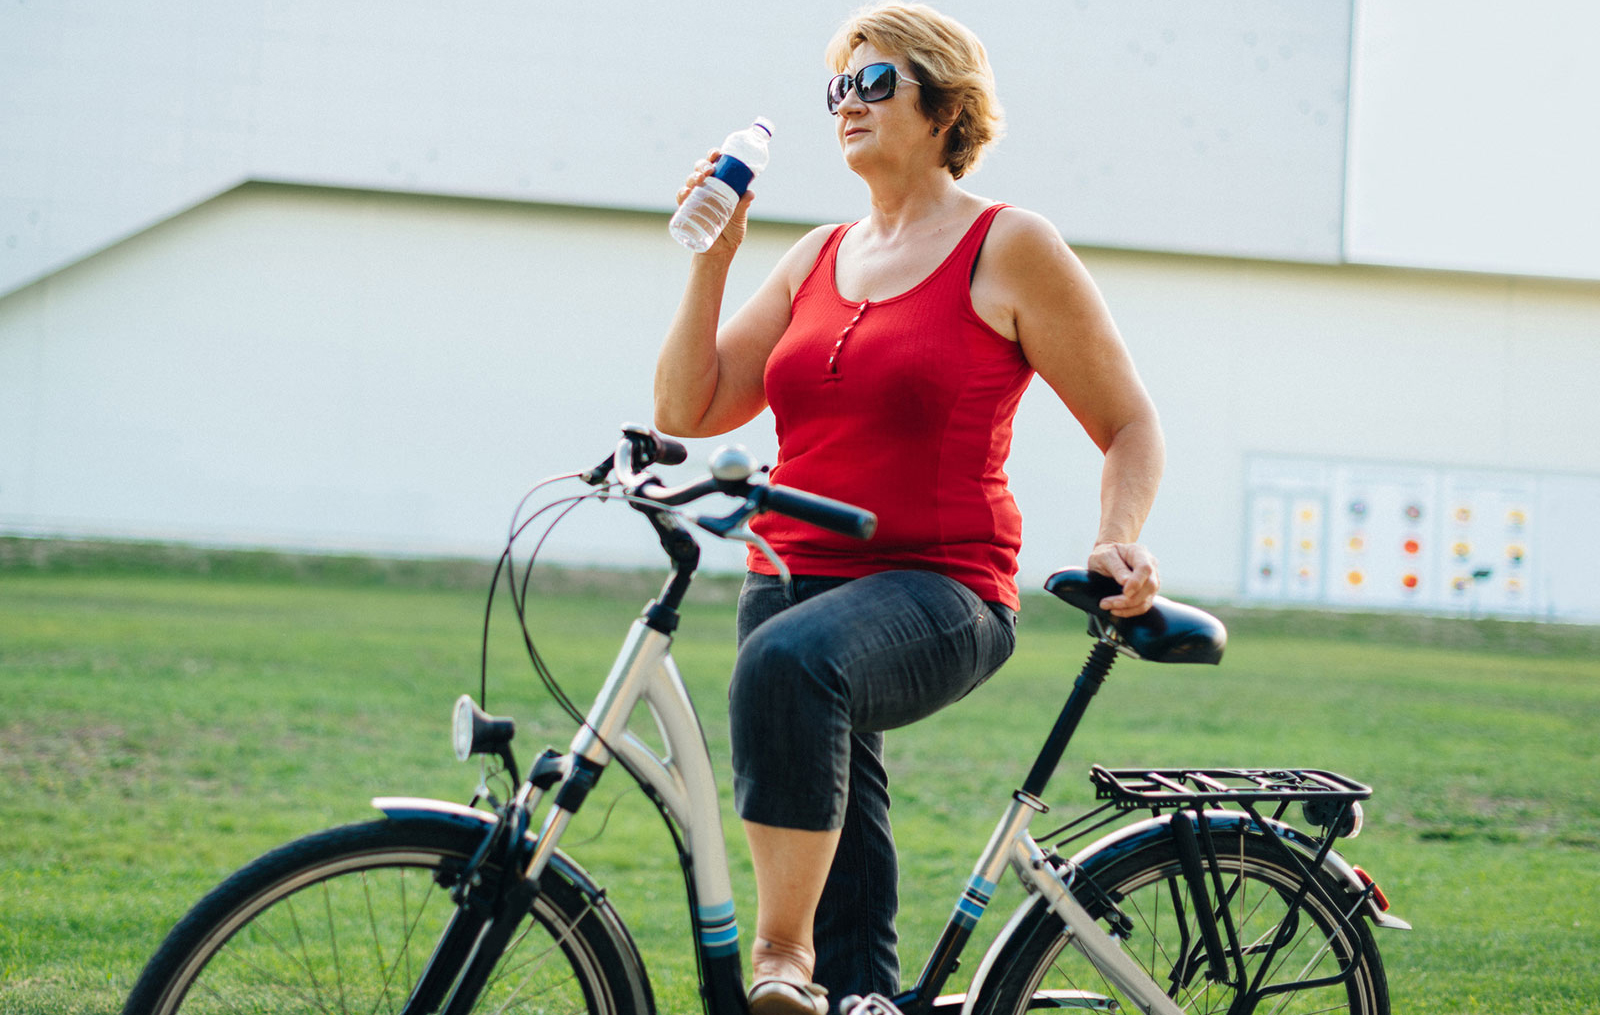 Reasons You Should Go For a Heavy Duty Cycle